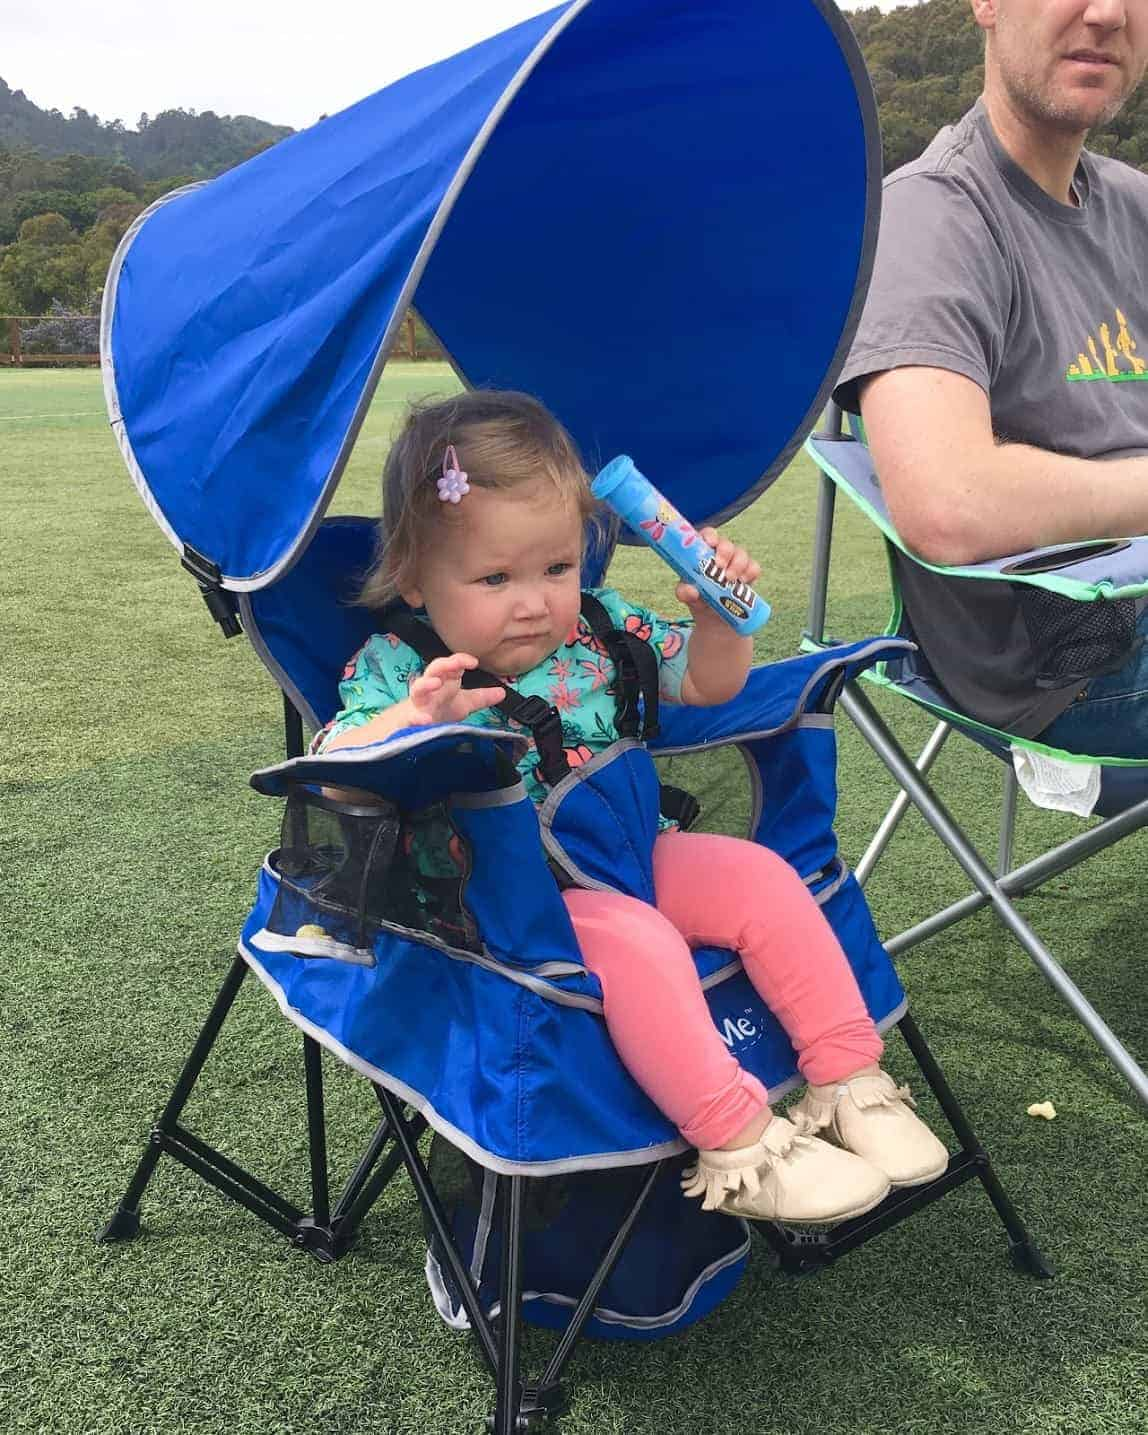 toddler girl sitting in a camping chair with 5 point harness, holding M&Ms